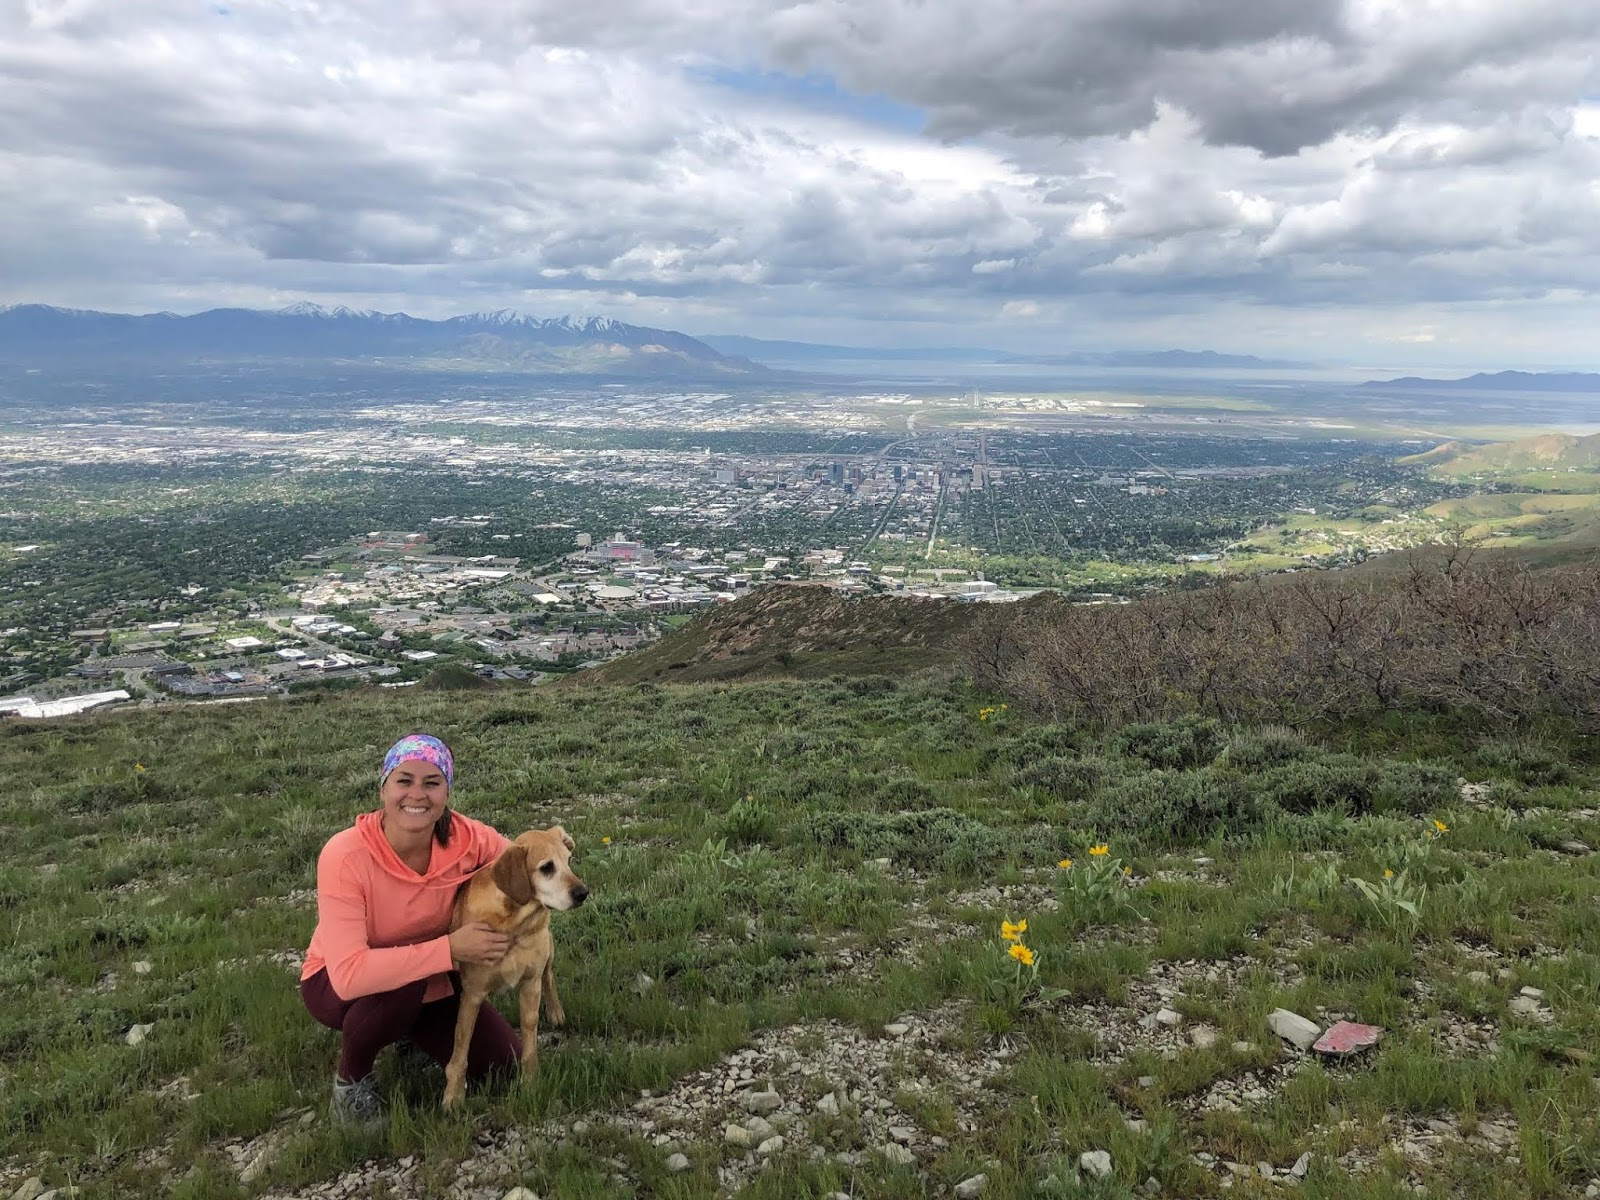 Hiking to Mt. Wire, Salt Lake City, Utah, Hiking in Utah with Dogs